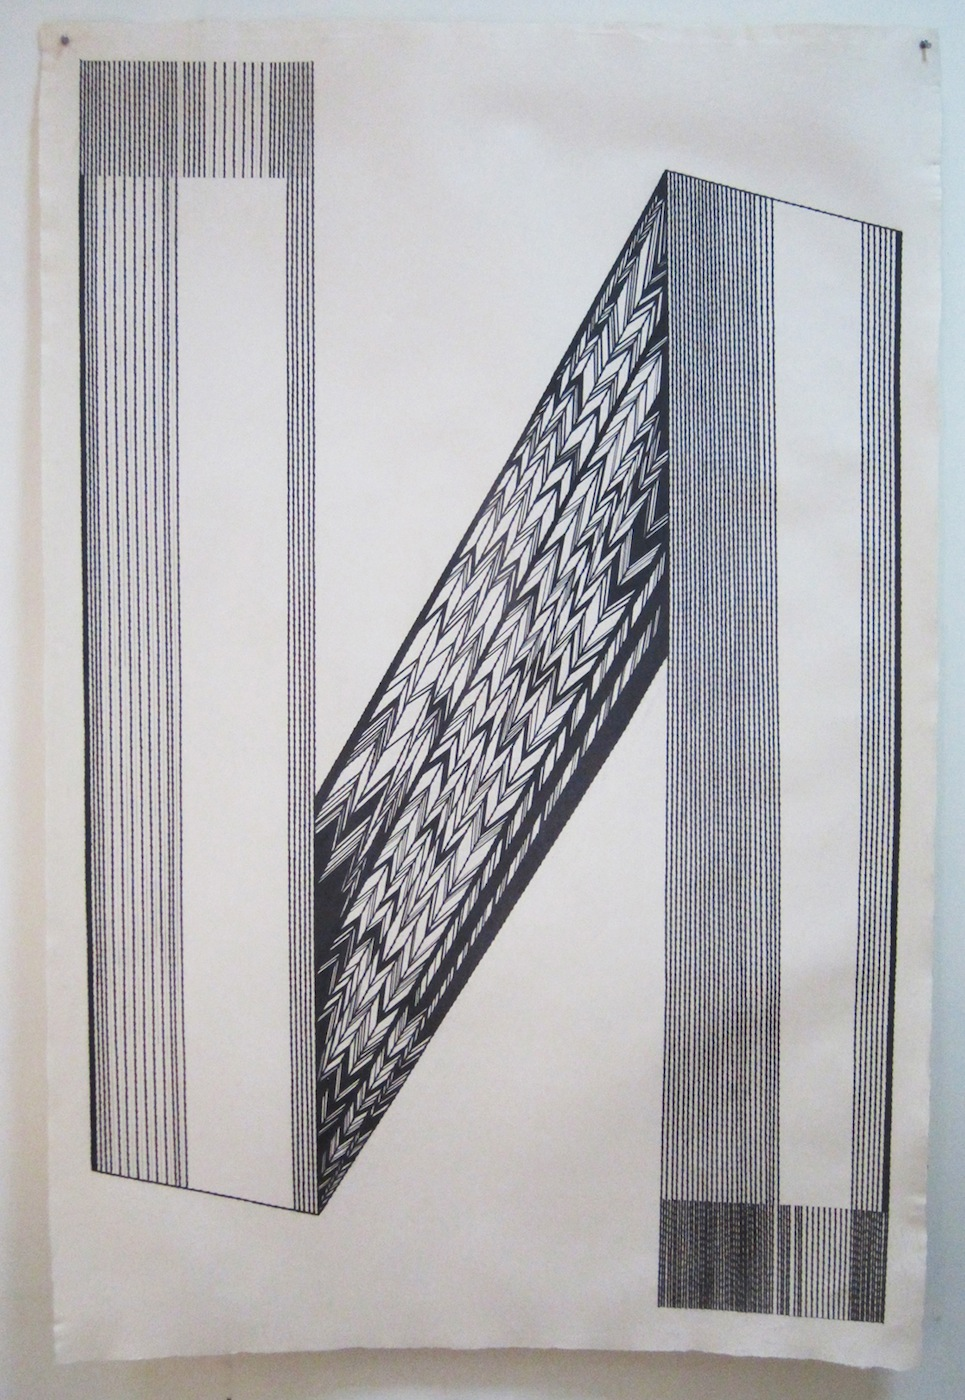 Alyssa Pheobus Mumtaz  Composure 2010 Graphite on handmade paper 152.4 x 101.6 cm